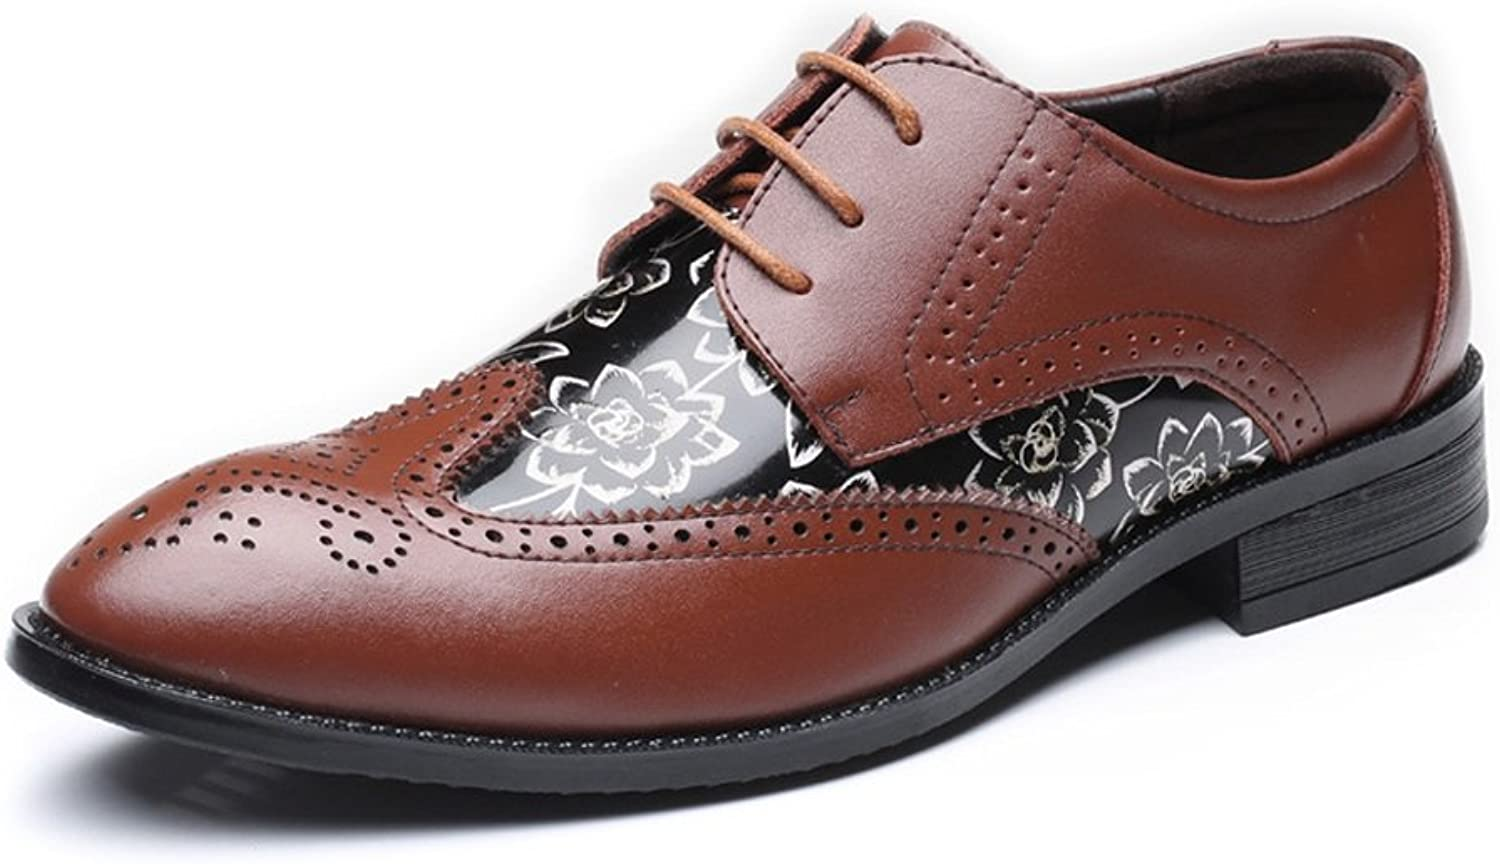 JIALUN-shoes Fashion Men's Brogue Loafer shoes Wingtip Hollow Carving Splice Smooth Flower Pattern PU Leather Lace Up Lined Oxfords UP to 11.5MUS